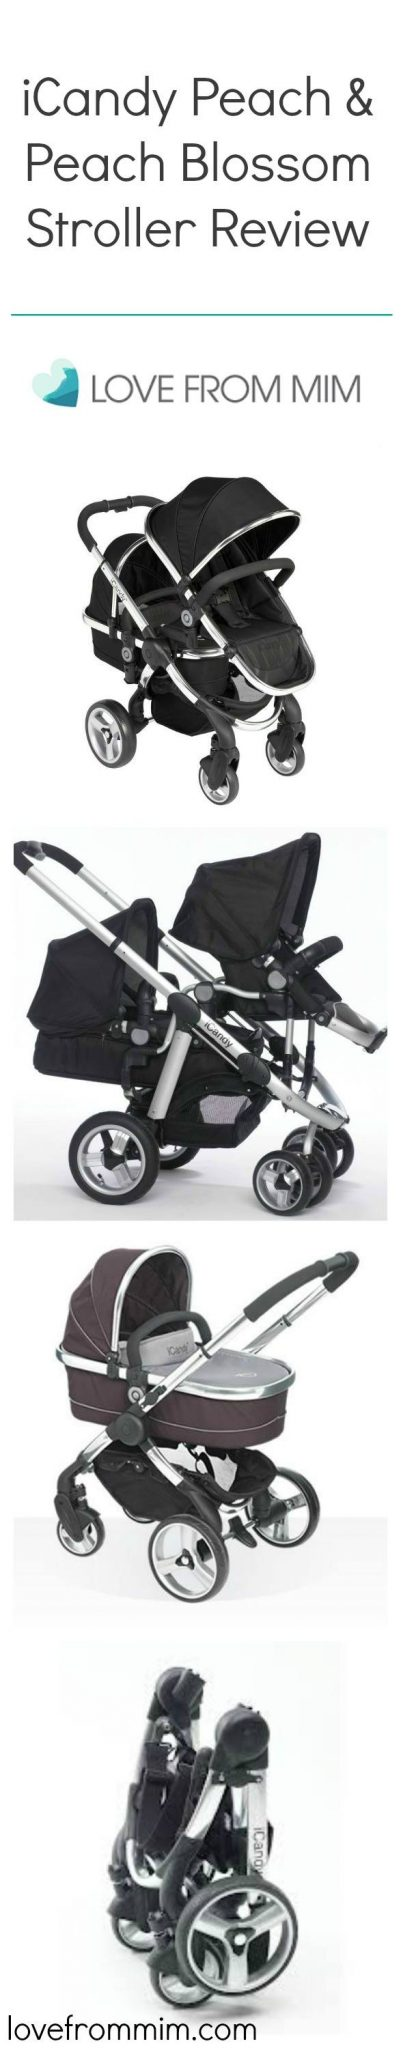 Are you looking for a great stroller that will grow with your growing family? The iCandy Peach Stroller is perfect for one or two babies! It's a convenient single stroller or double stroller that folds down easily too. Find out more! #icandy #icandyreview #candypeachstroller #bestStroller #premiumstroller #luxurypram